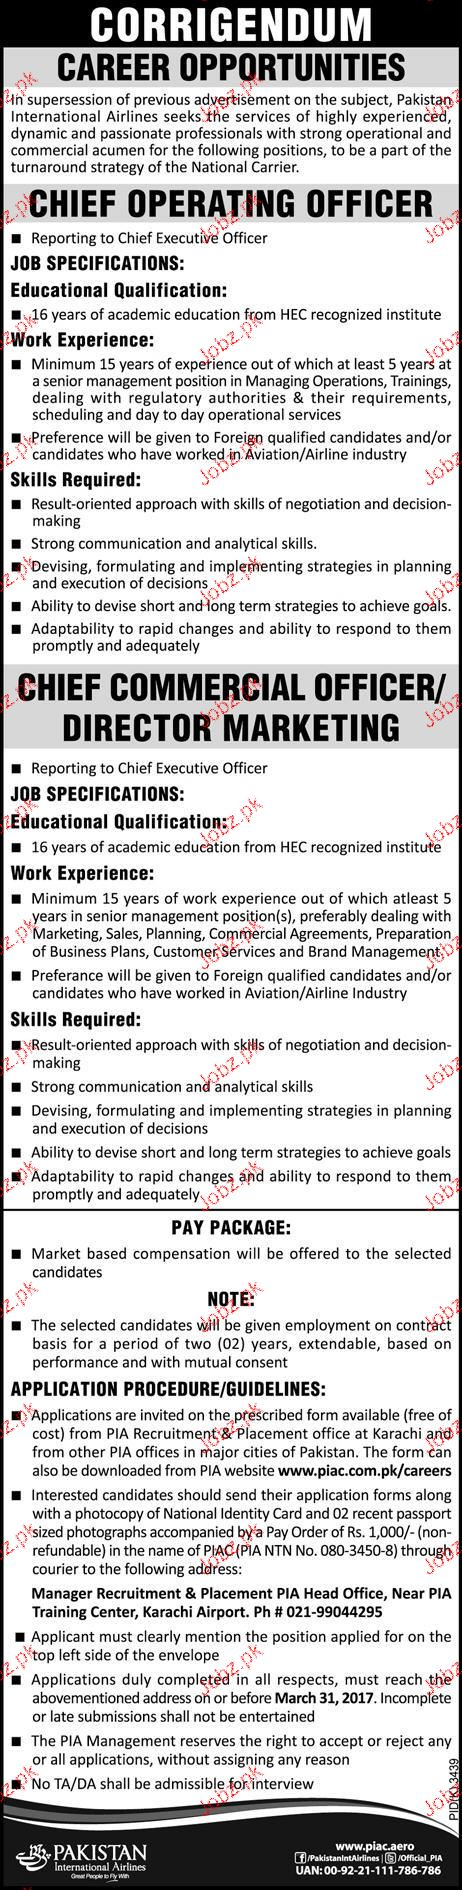 Chief Operating Officers Job Opportunity